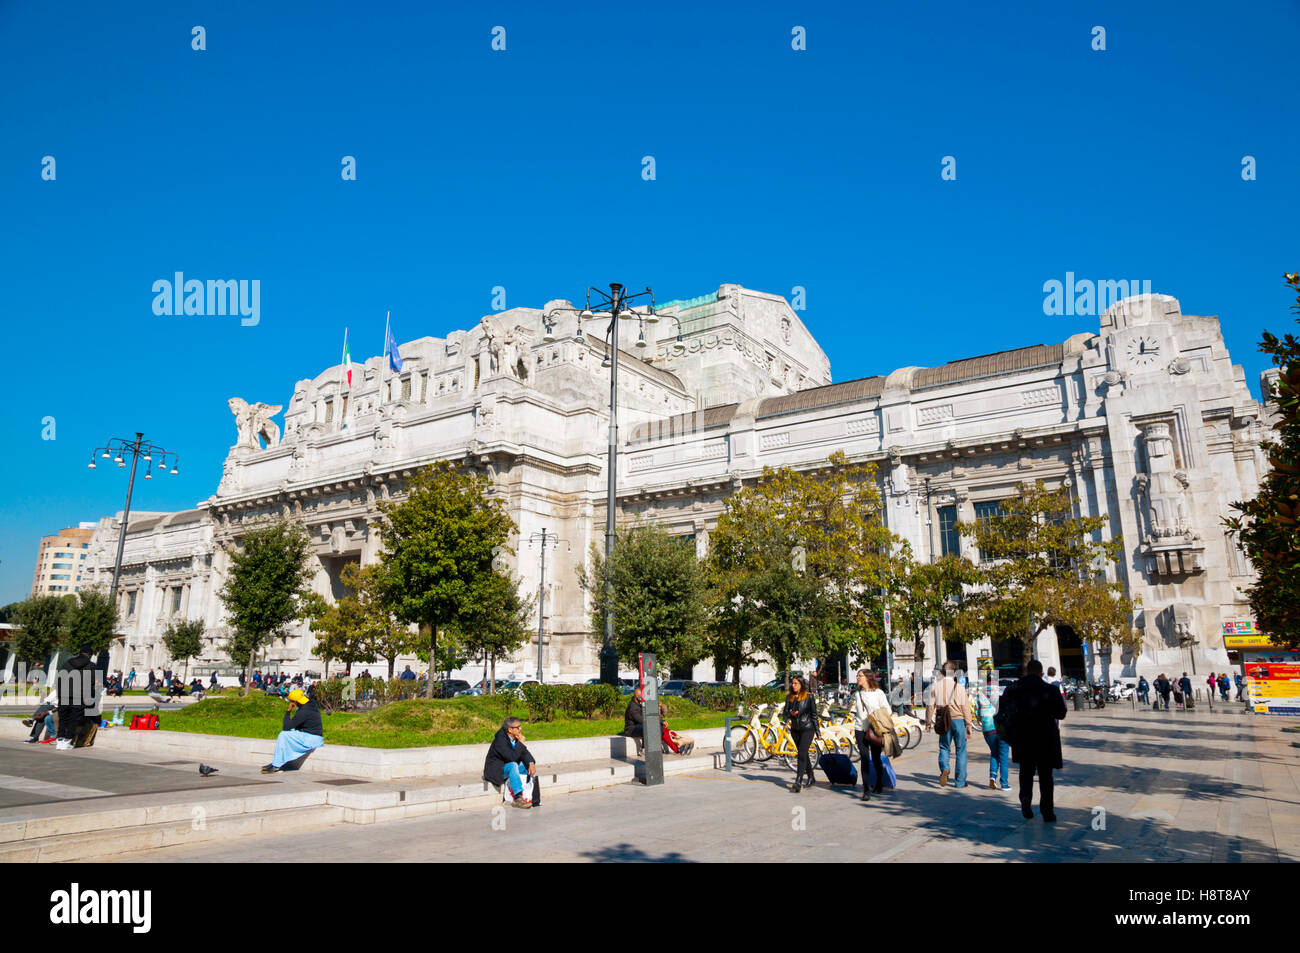 Milano Centrale, main railway station, Piazza Duca d'Aosta, Milan, Lombardy, Italy - Stock Image